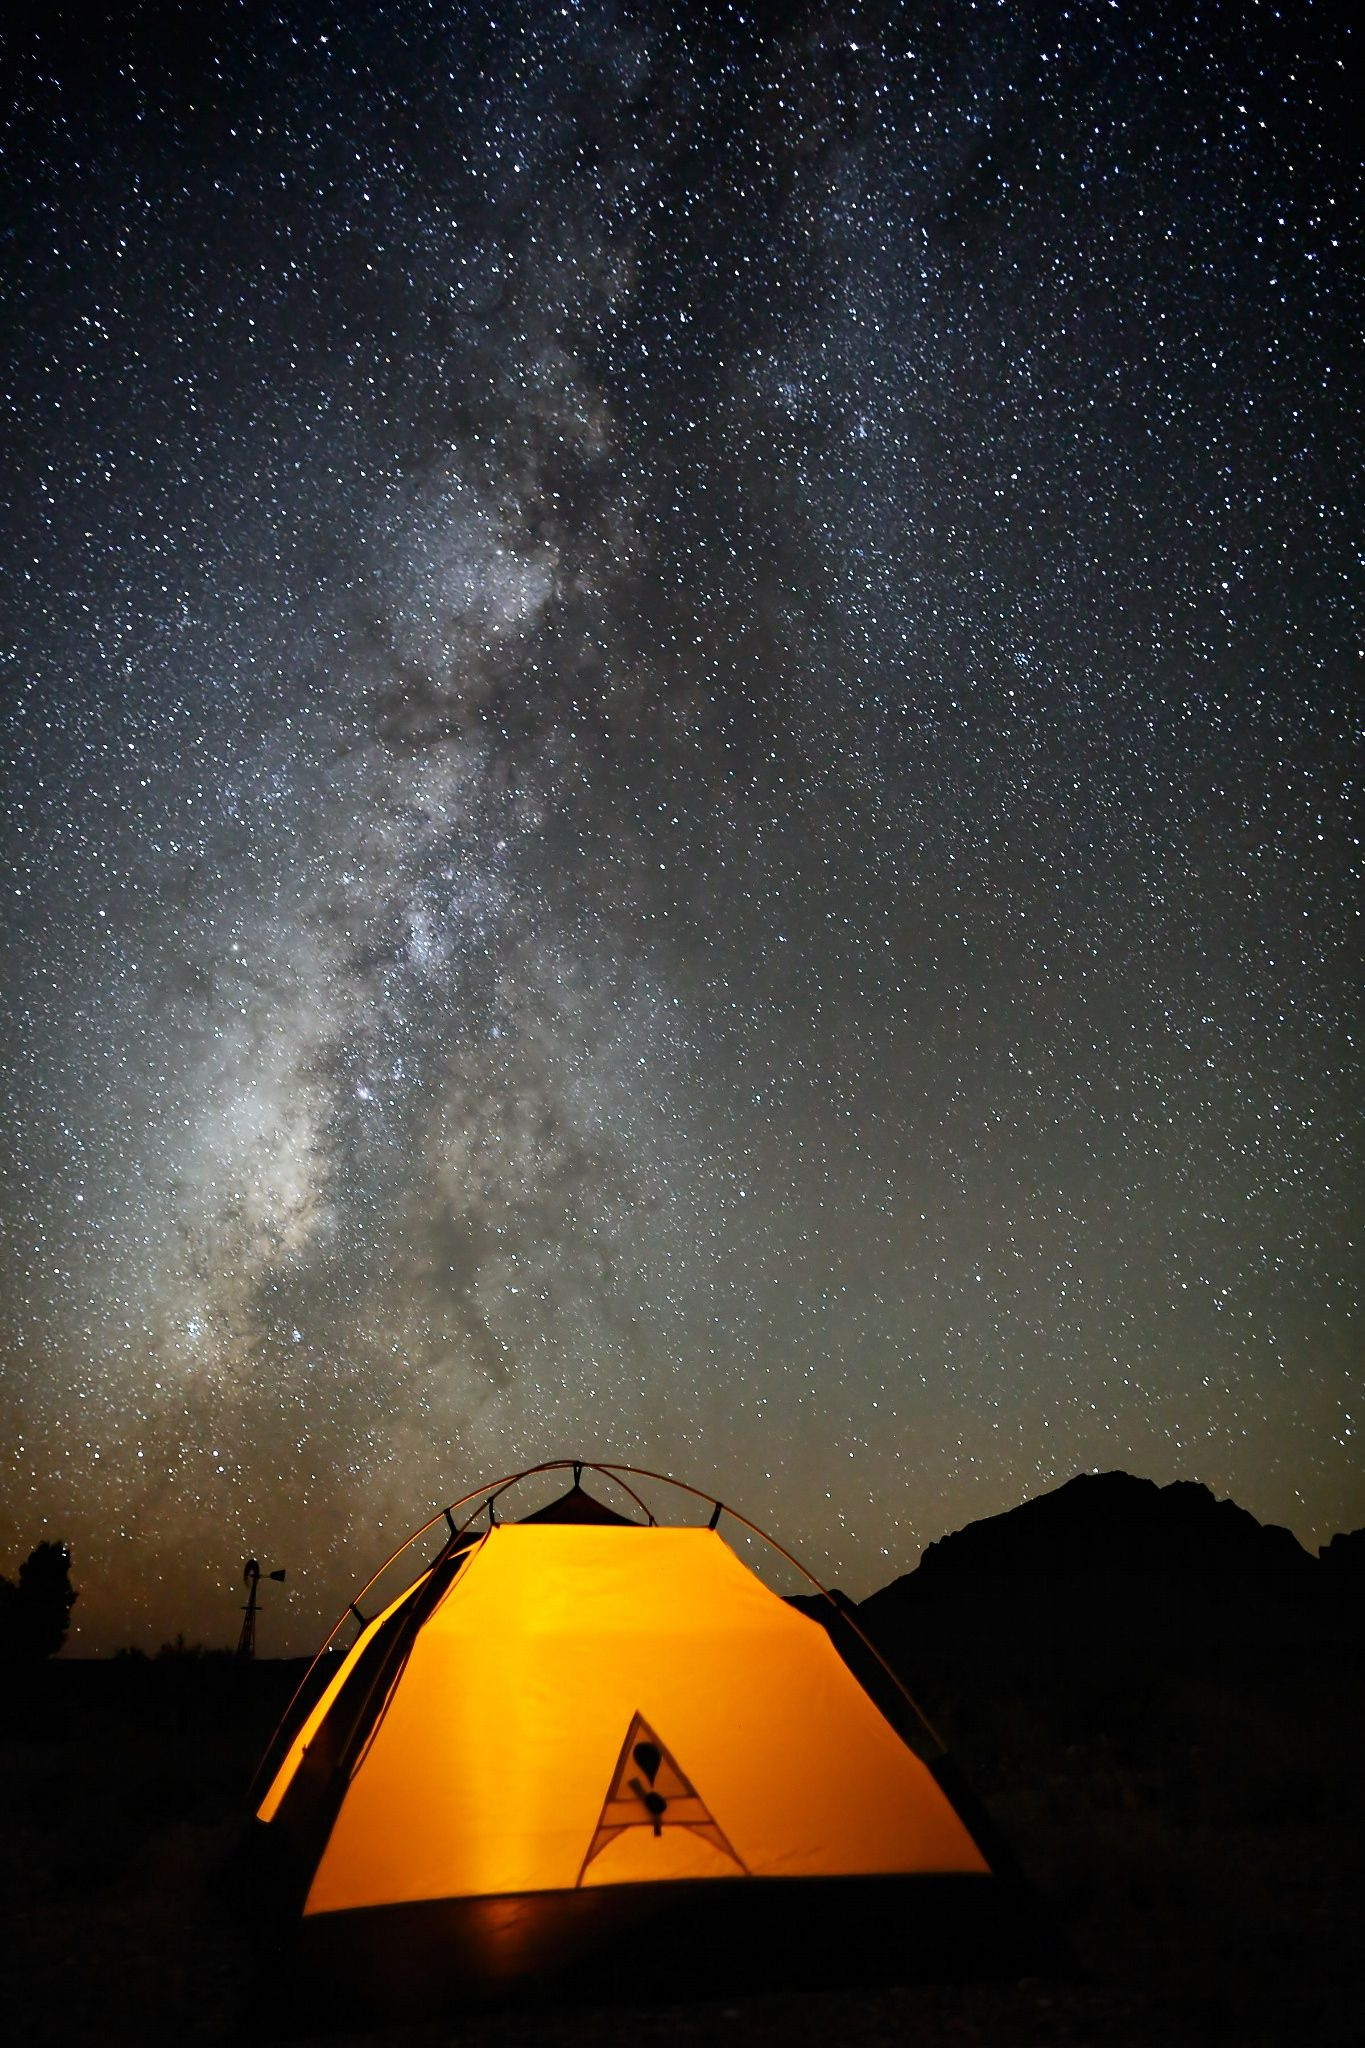 Tent and Stars - Big Bend - Tent and Milky Way on a dark September night & Tent and Stars - Big Bend - Tent and Milky Way on a dark September ...